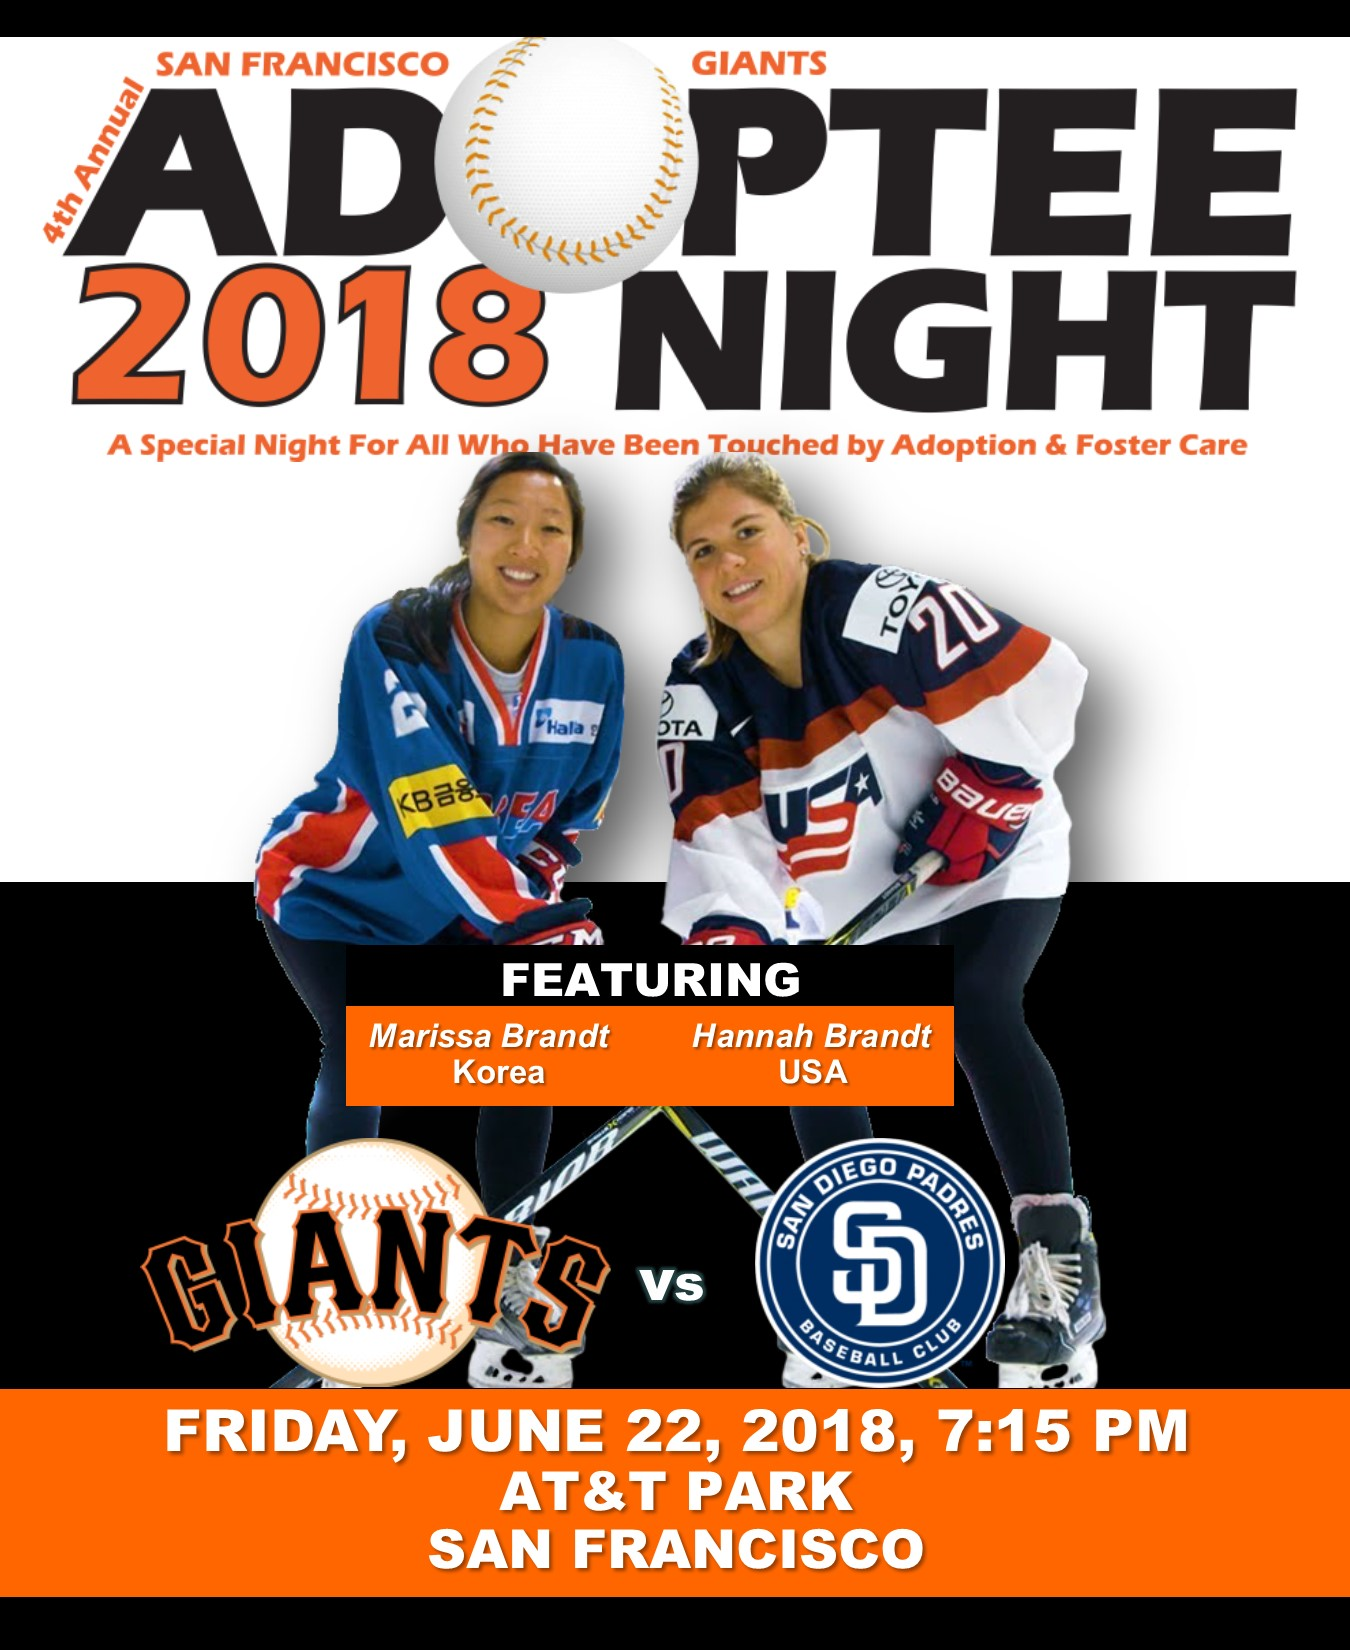 4TH ANNUAL SF GIANTS ADOPTEE NIGHT 2018 Photo